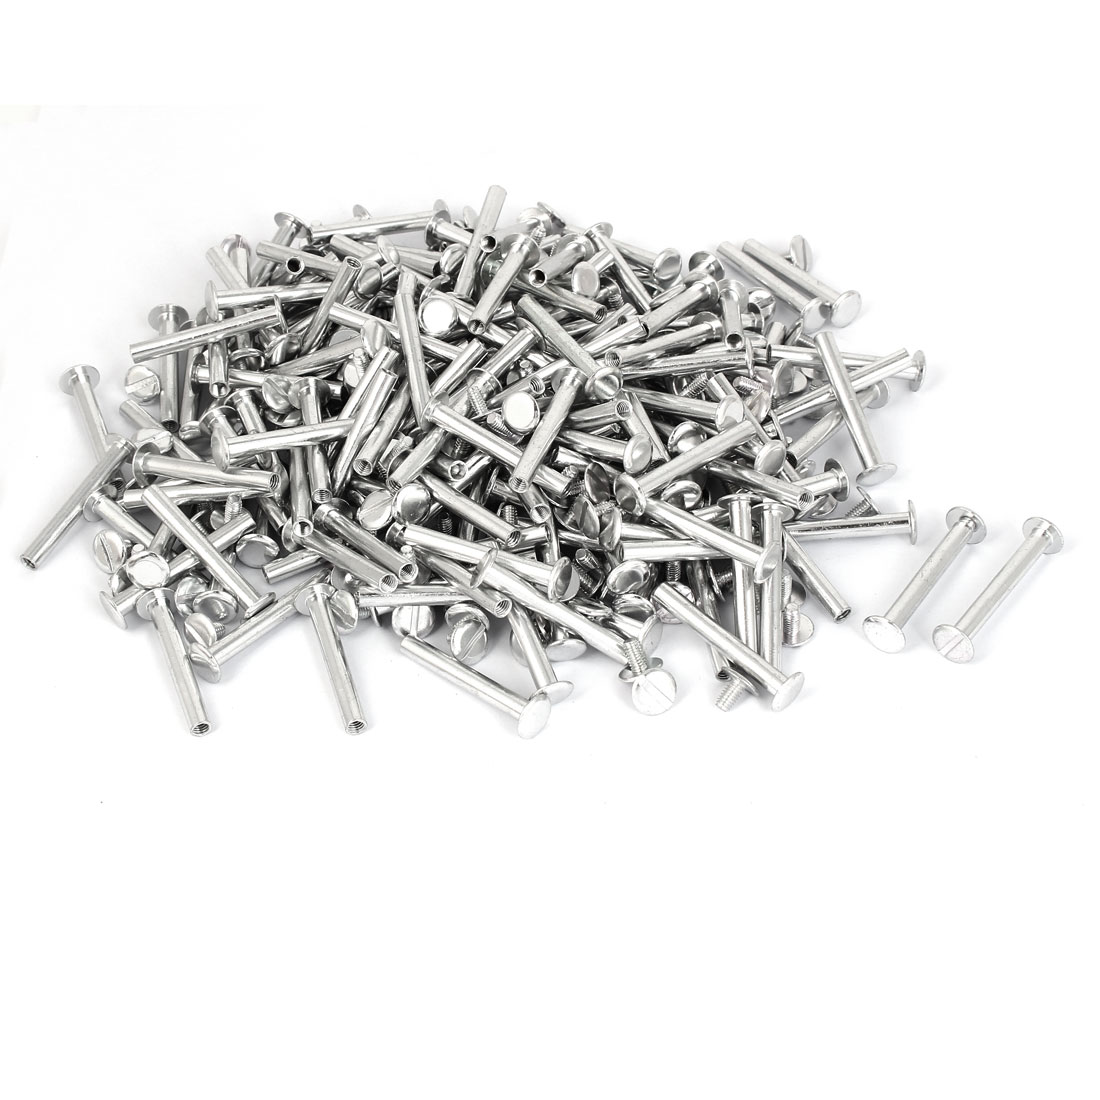 M5x38mm Aluminum Chicago Screws Binding Posts Silver Tone 200pcs